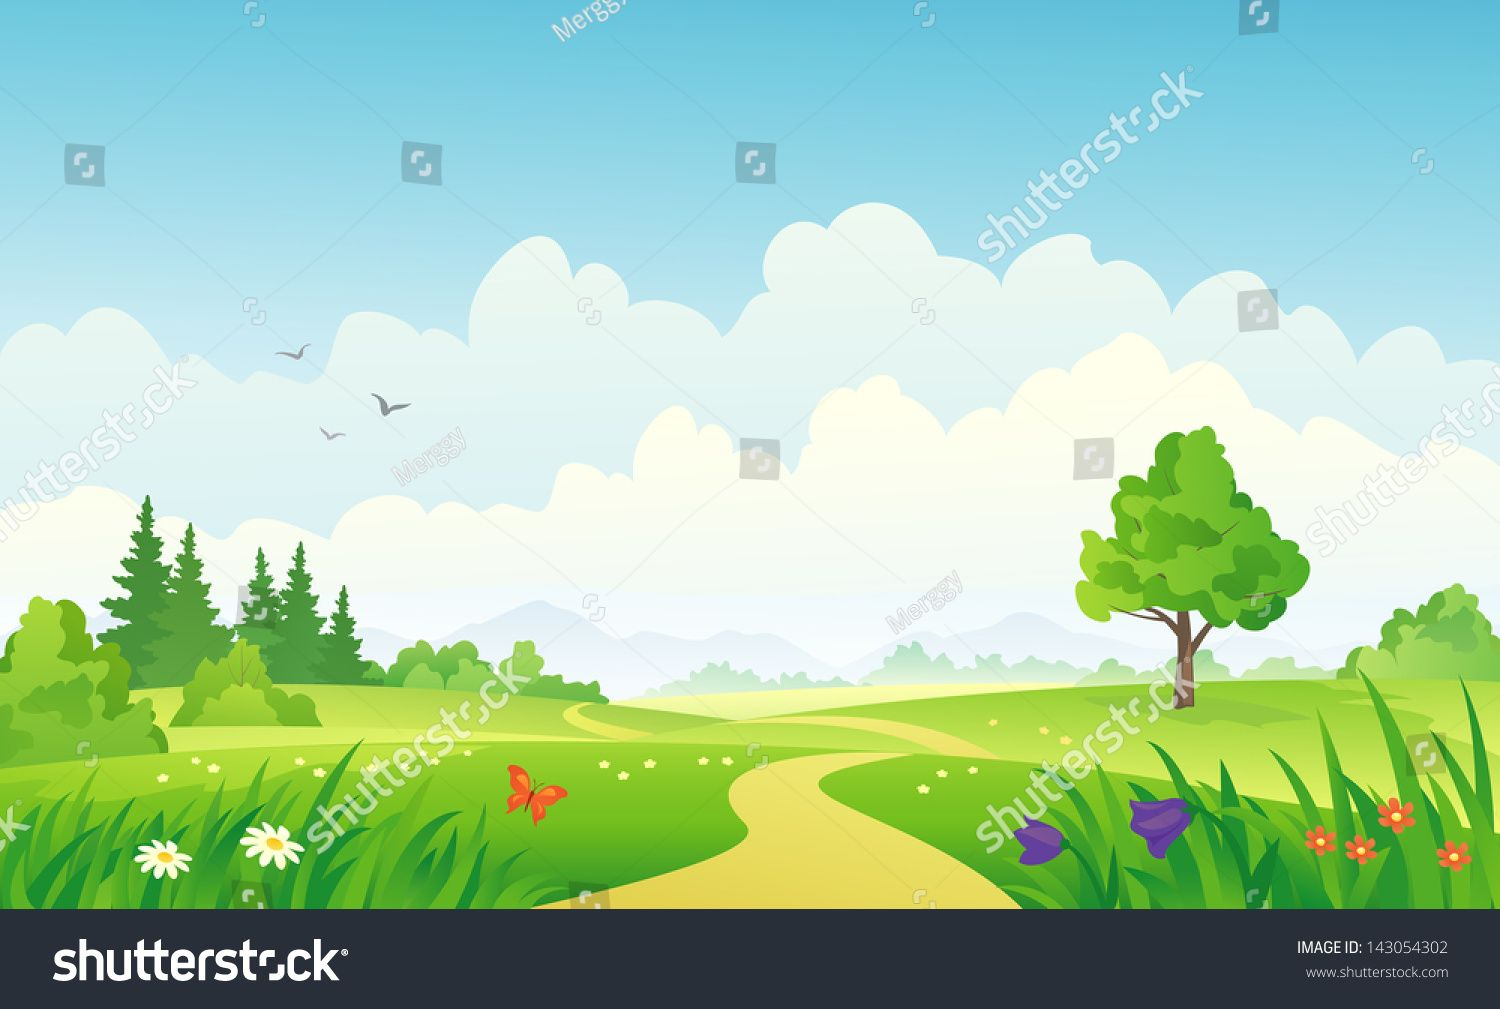 Vector illustration of a beautiful summer landscape.